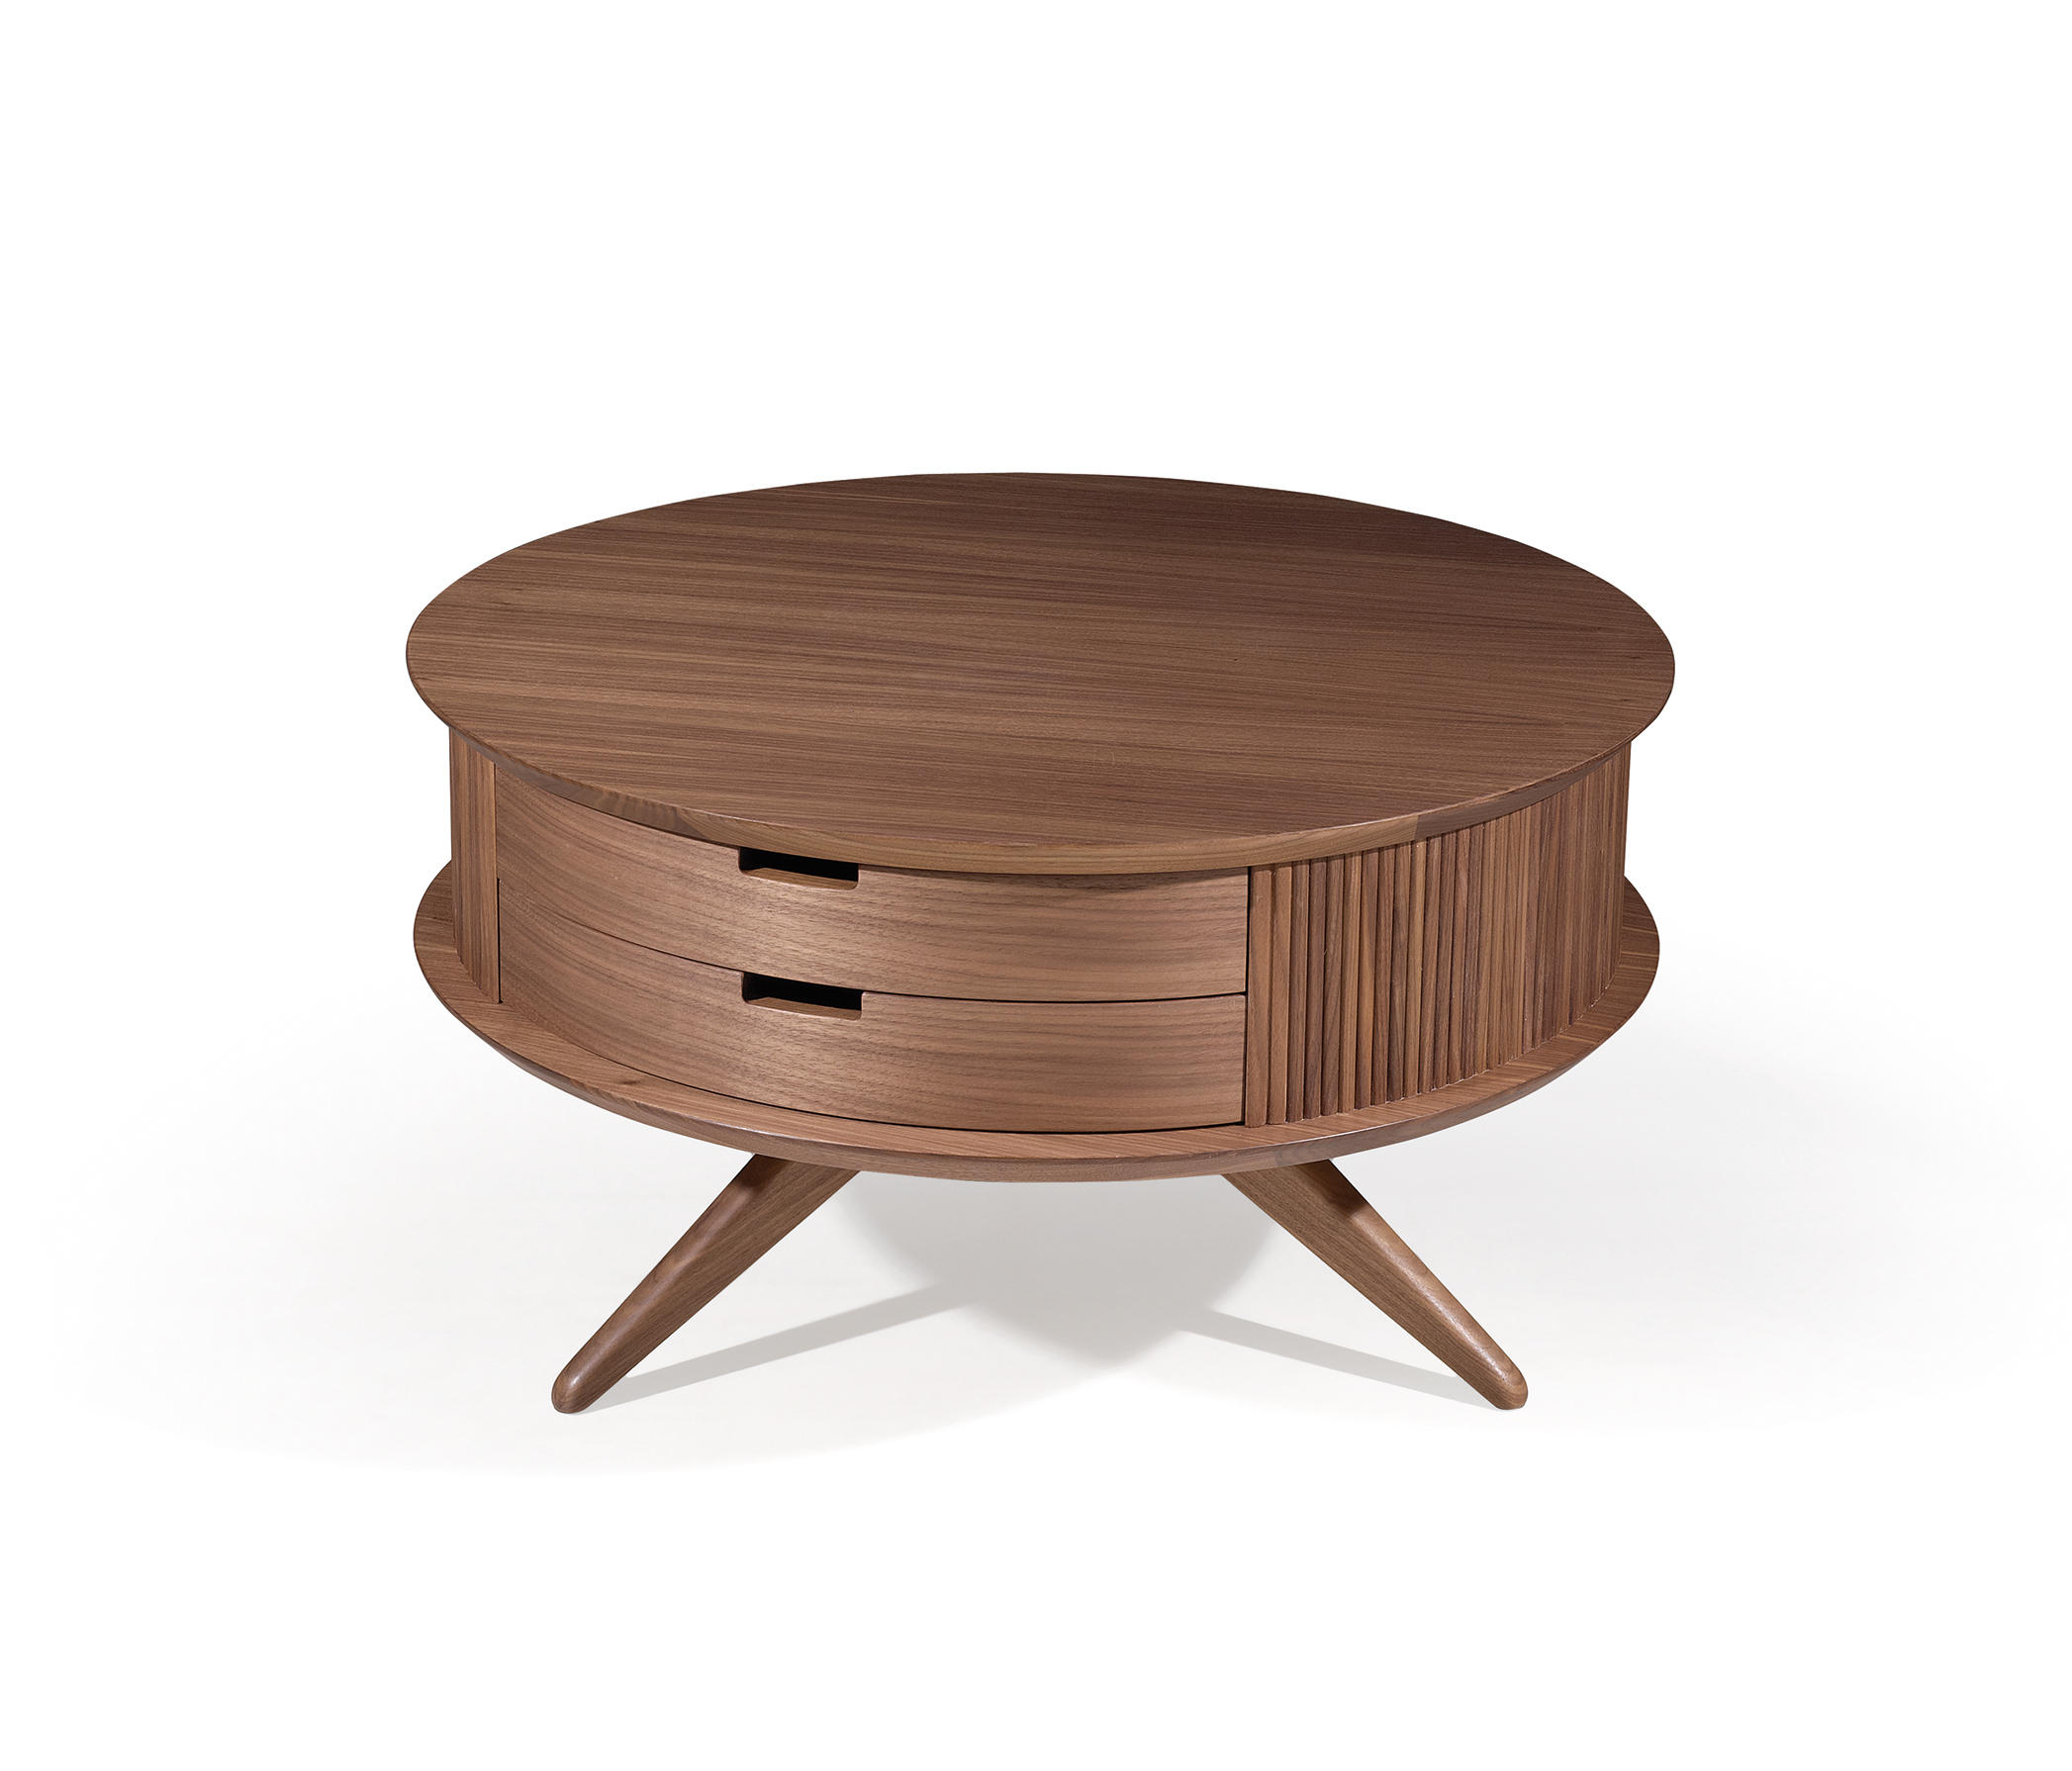 MARILYN COFFEE TABLE Side tables from Vladimir Kagan